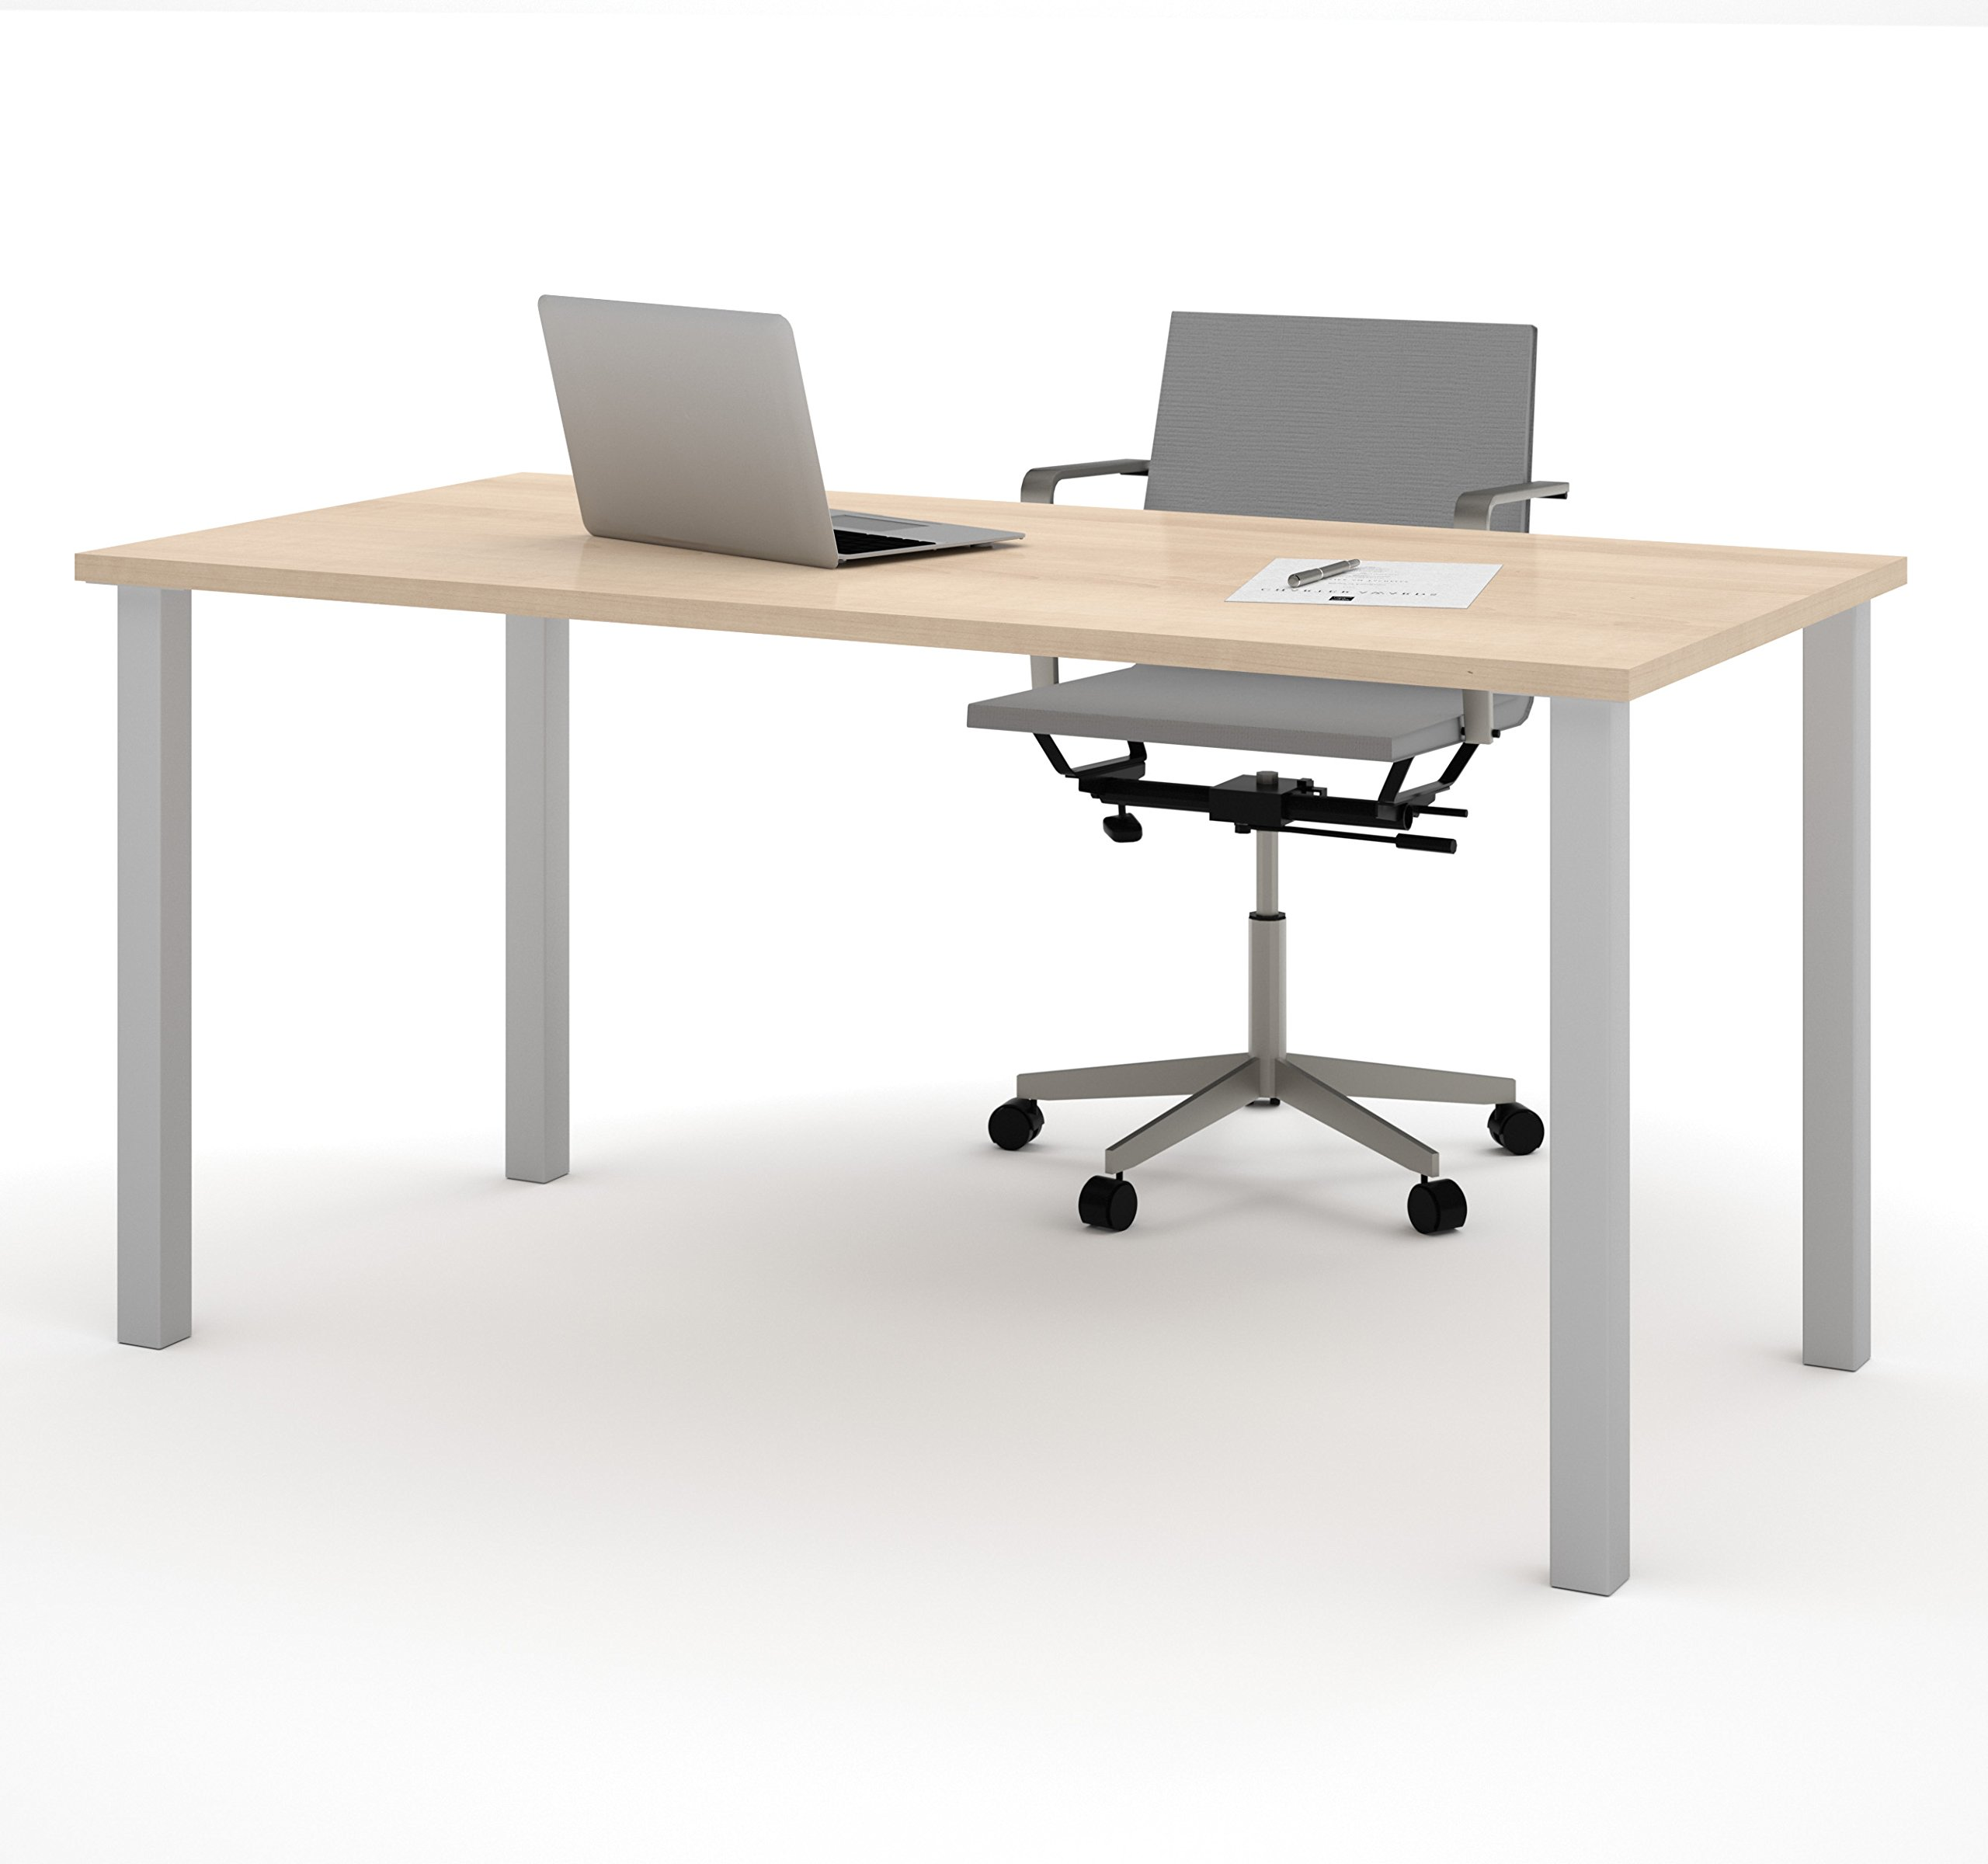 BESTAR Table with Square Metal Legs, 30 x 60'', Northern Maple